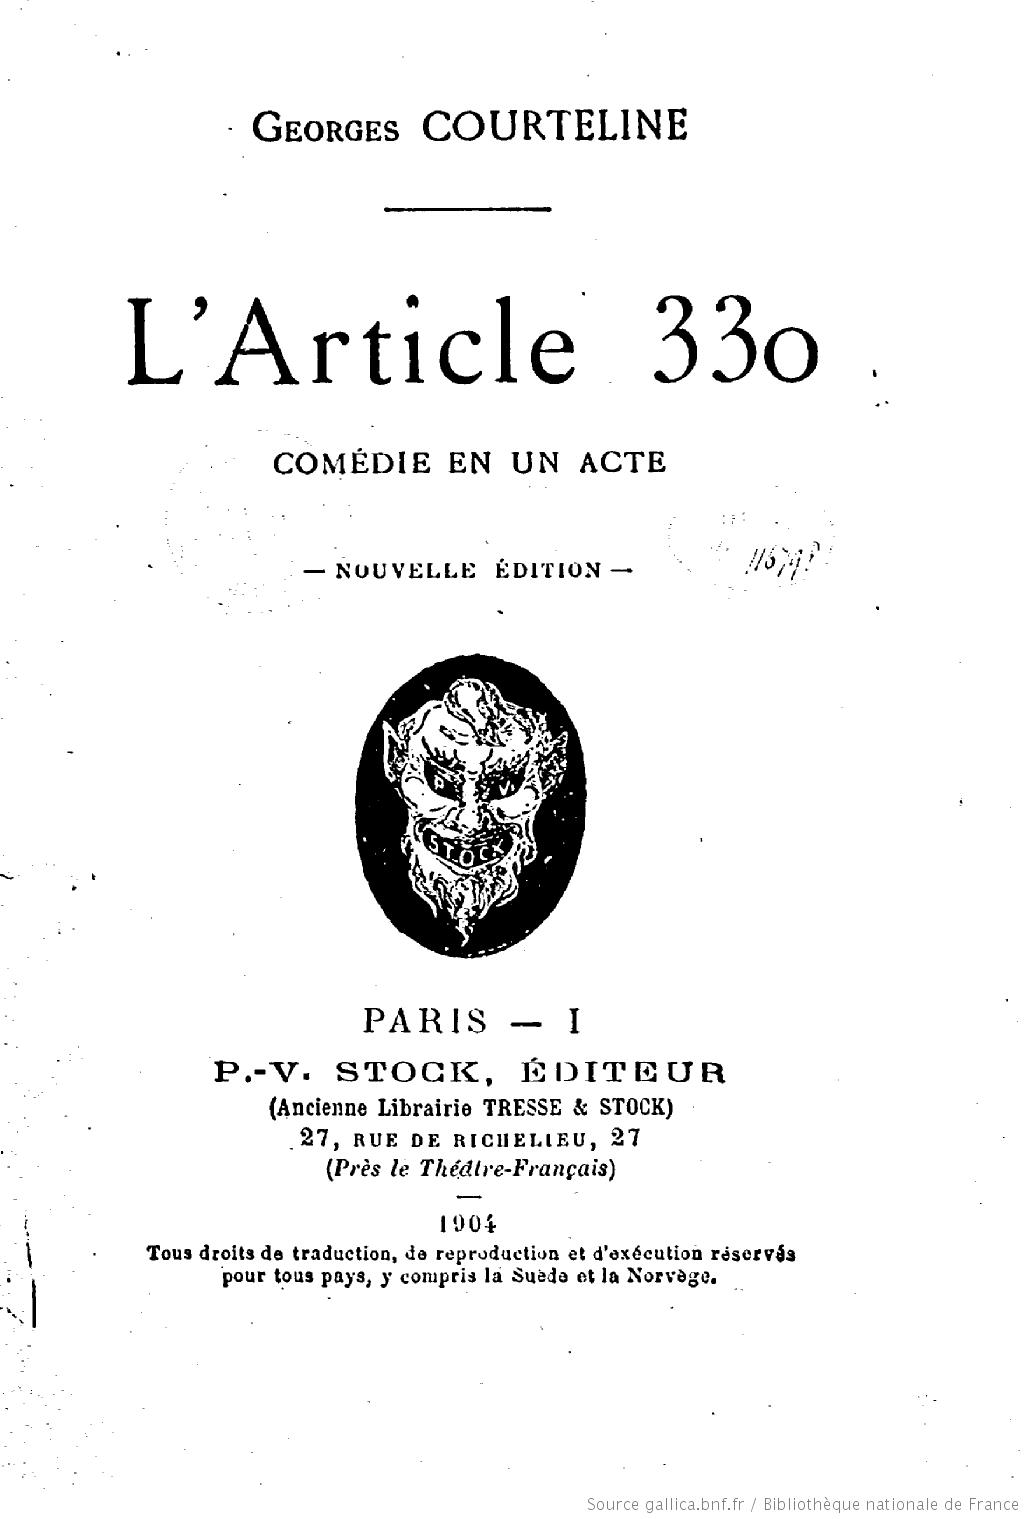 L'Article 330, Courteline, Georges (1858-1929)